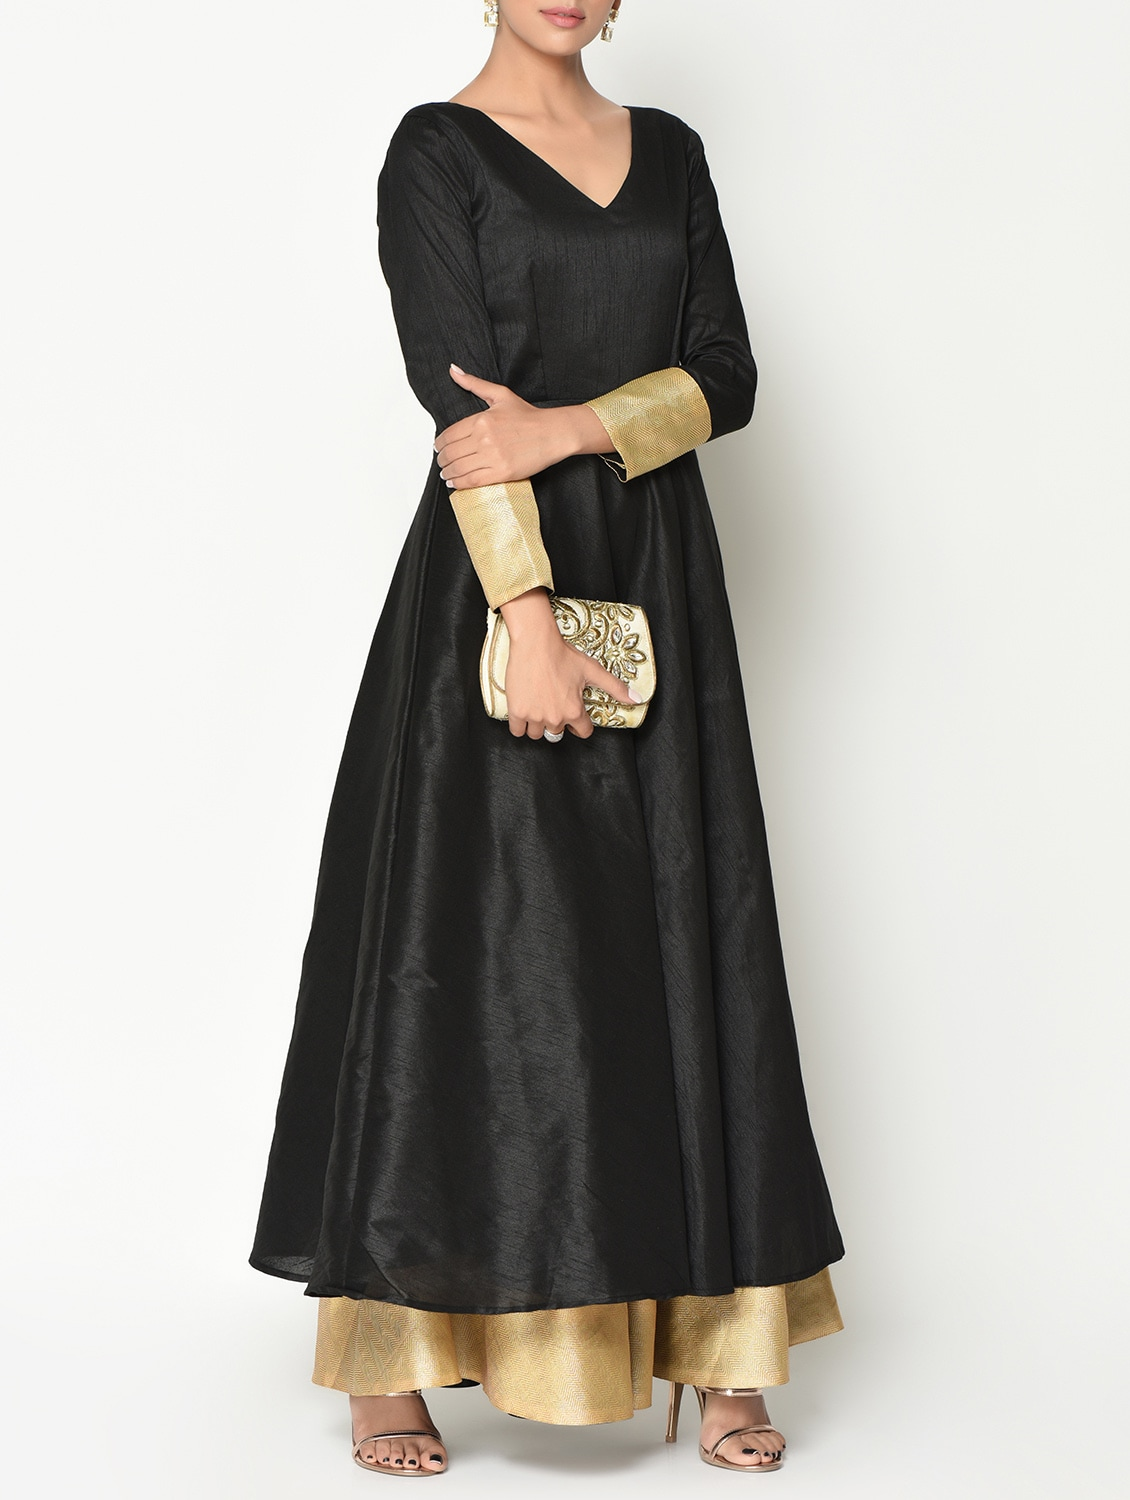 86267e5f1a Buy Black Silk Blend Maxi Dress for Women from Truebrowns for ₹3869 at 10%  off